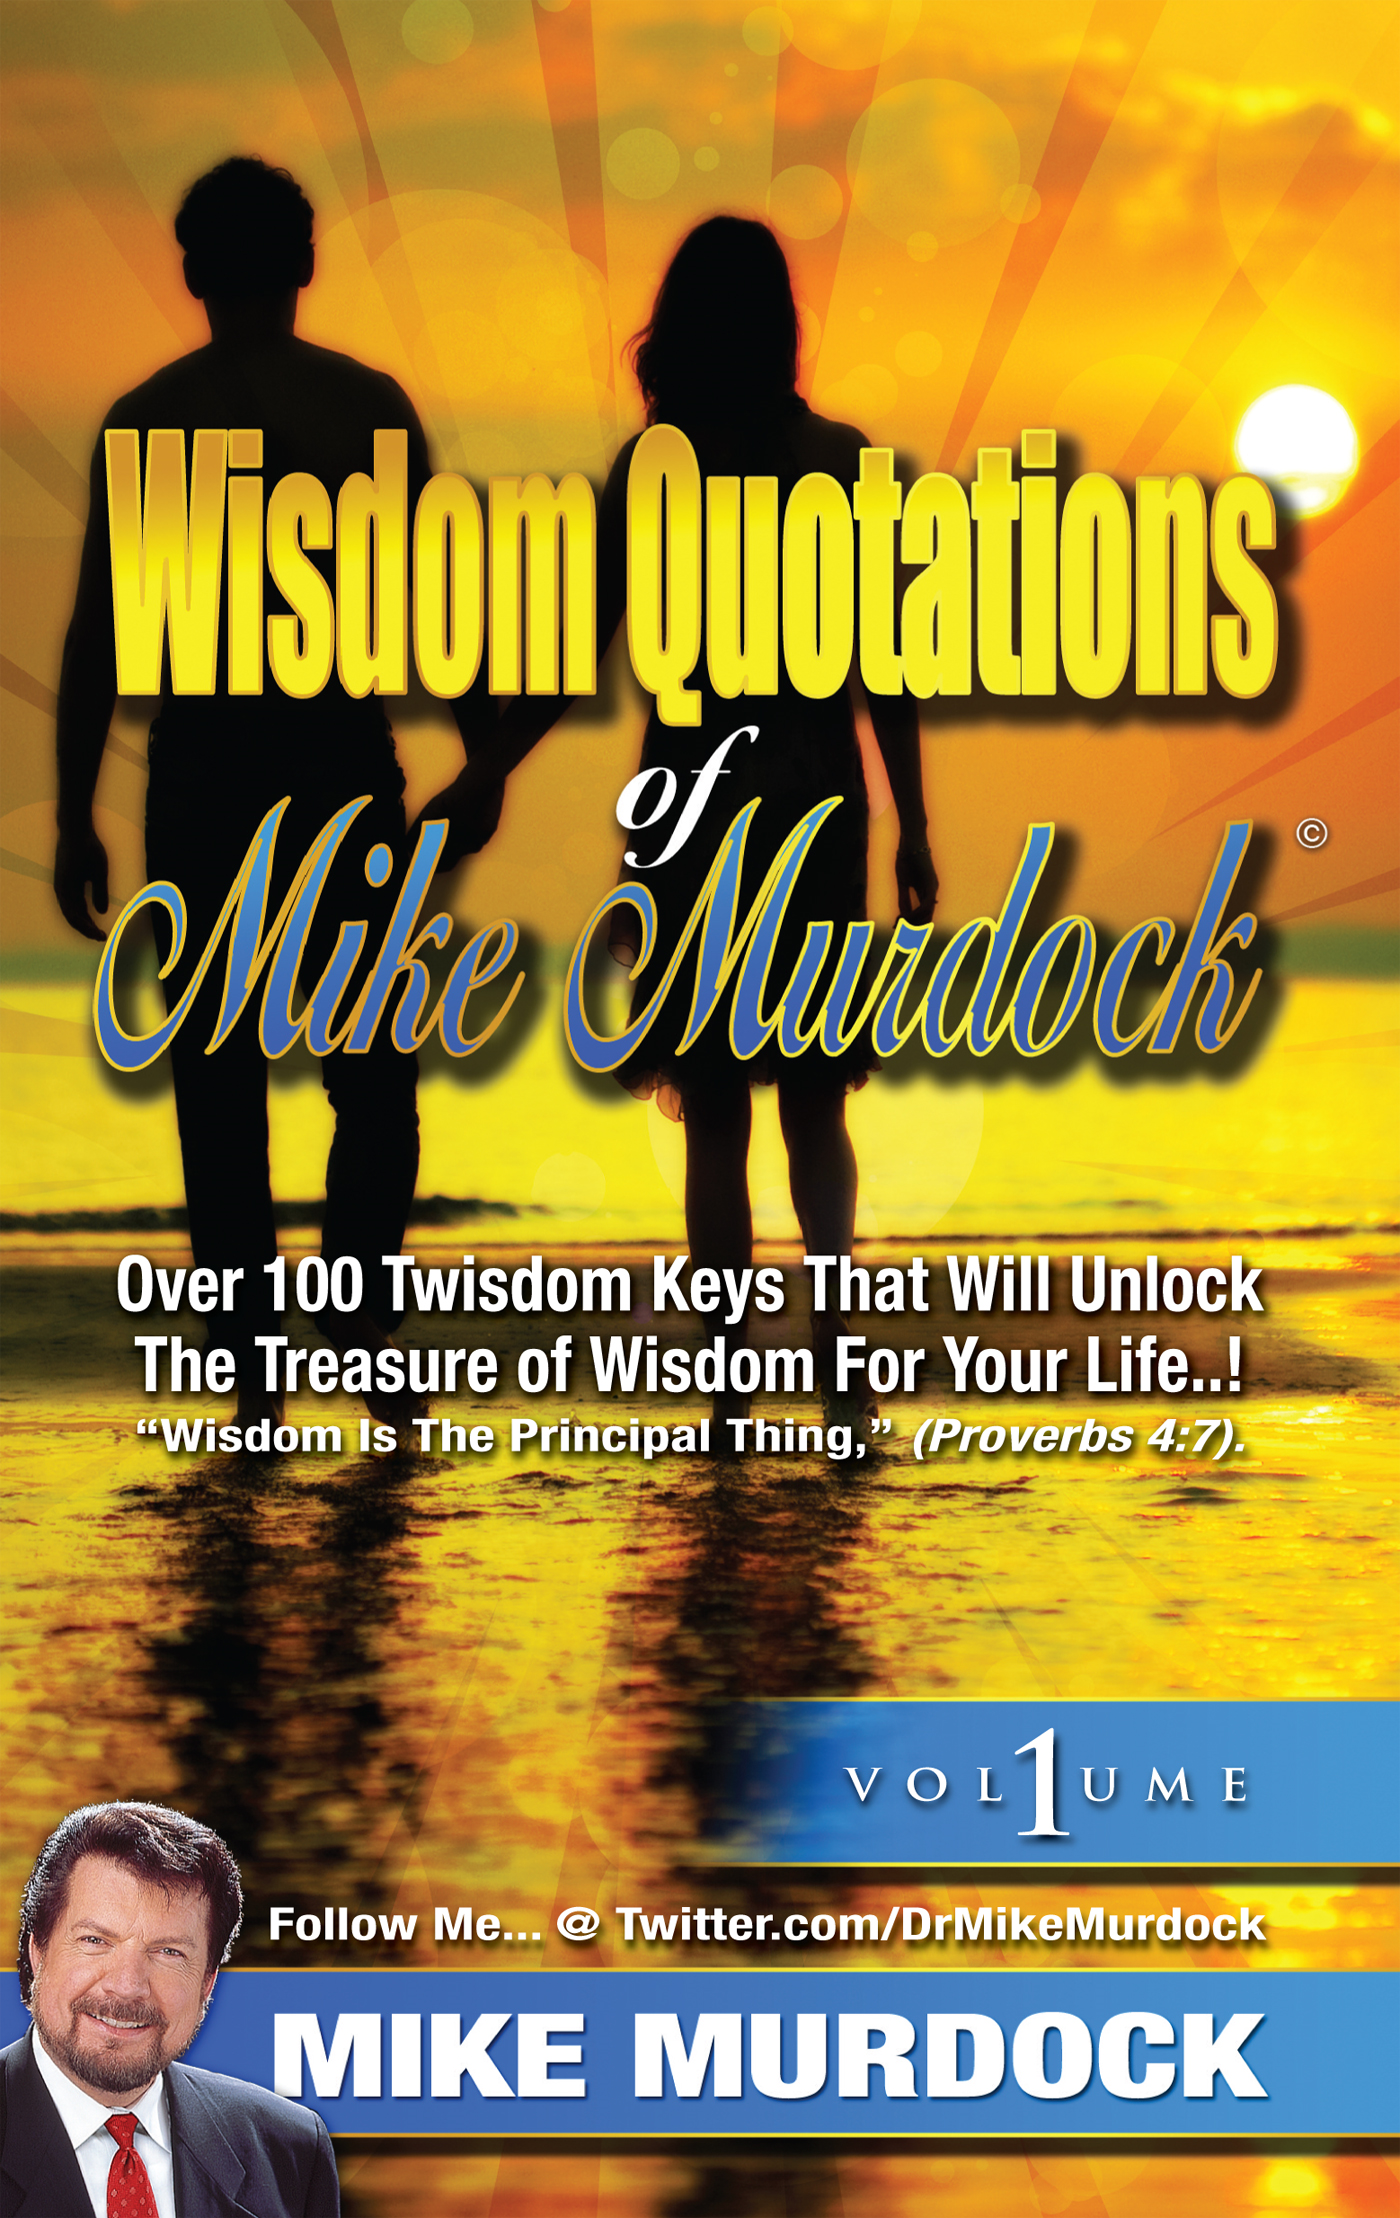 Wisdom Quotations of Mike Murdock, Volume 1